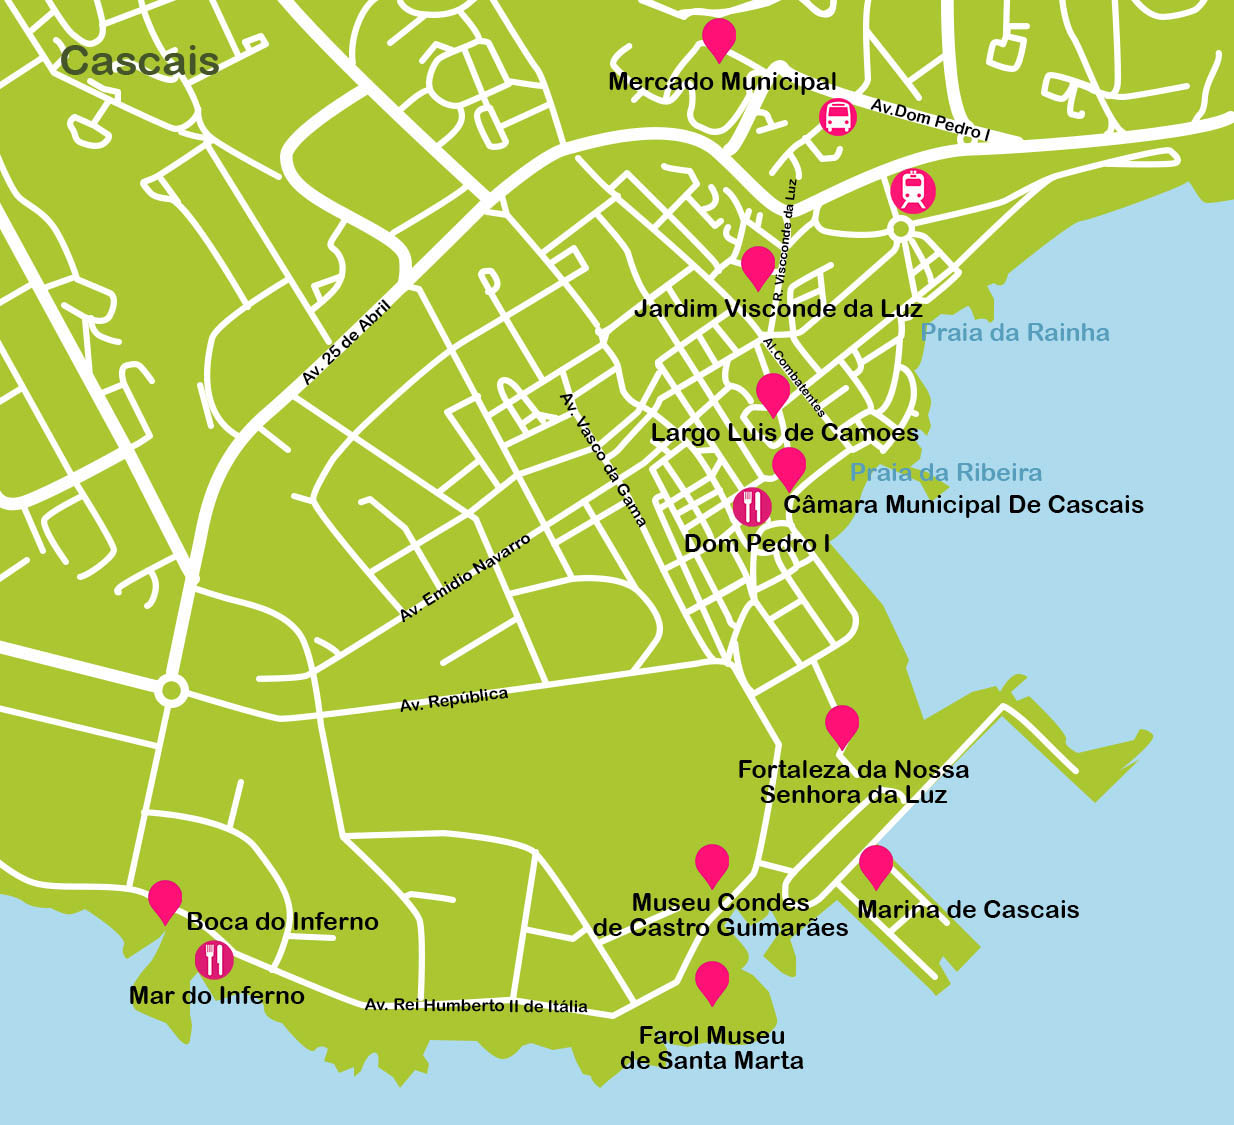 Cascais Travel Map Cascais Plane